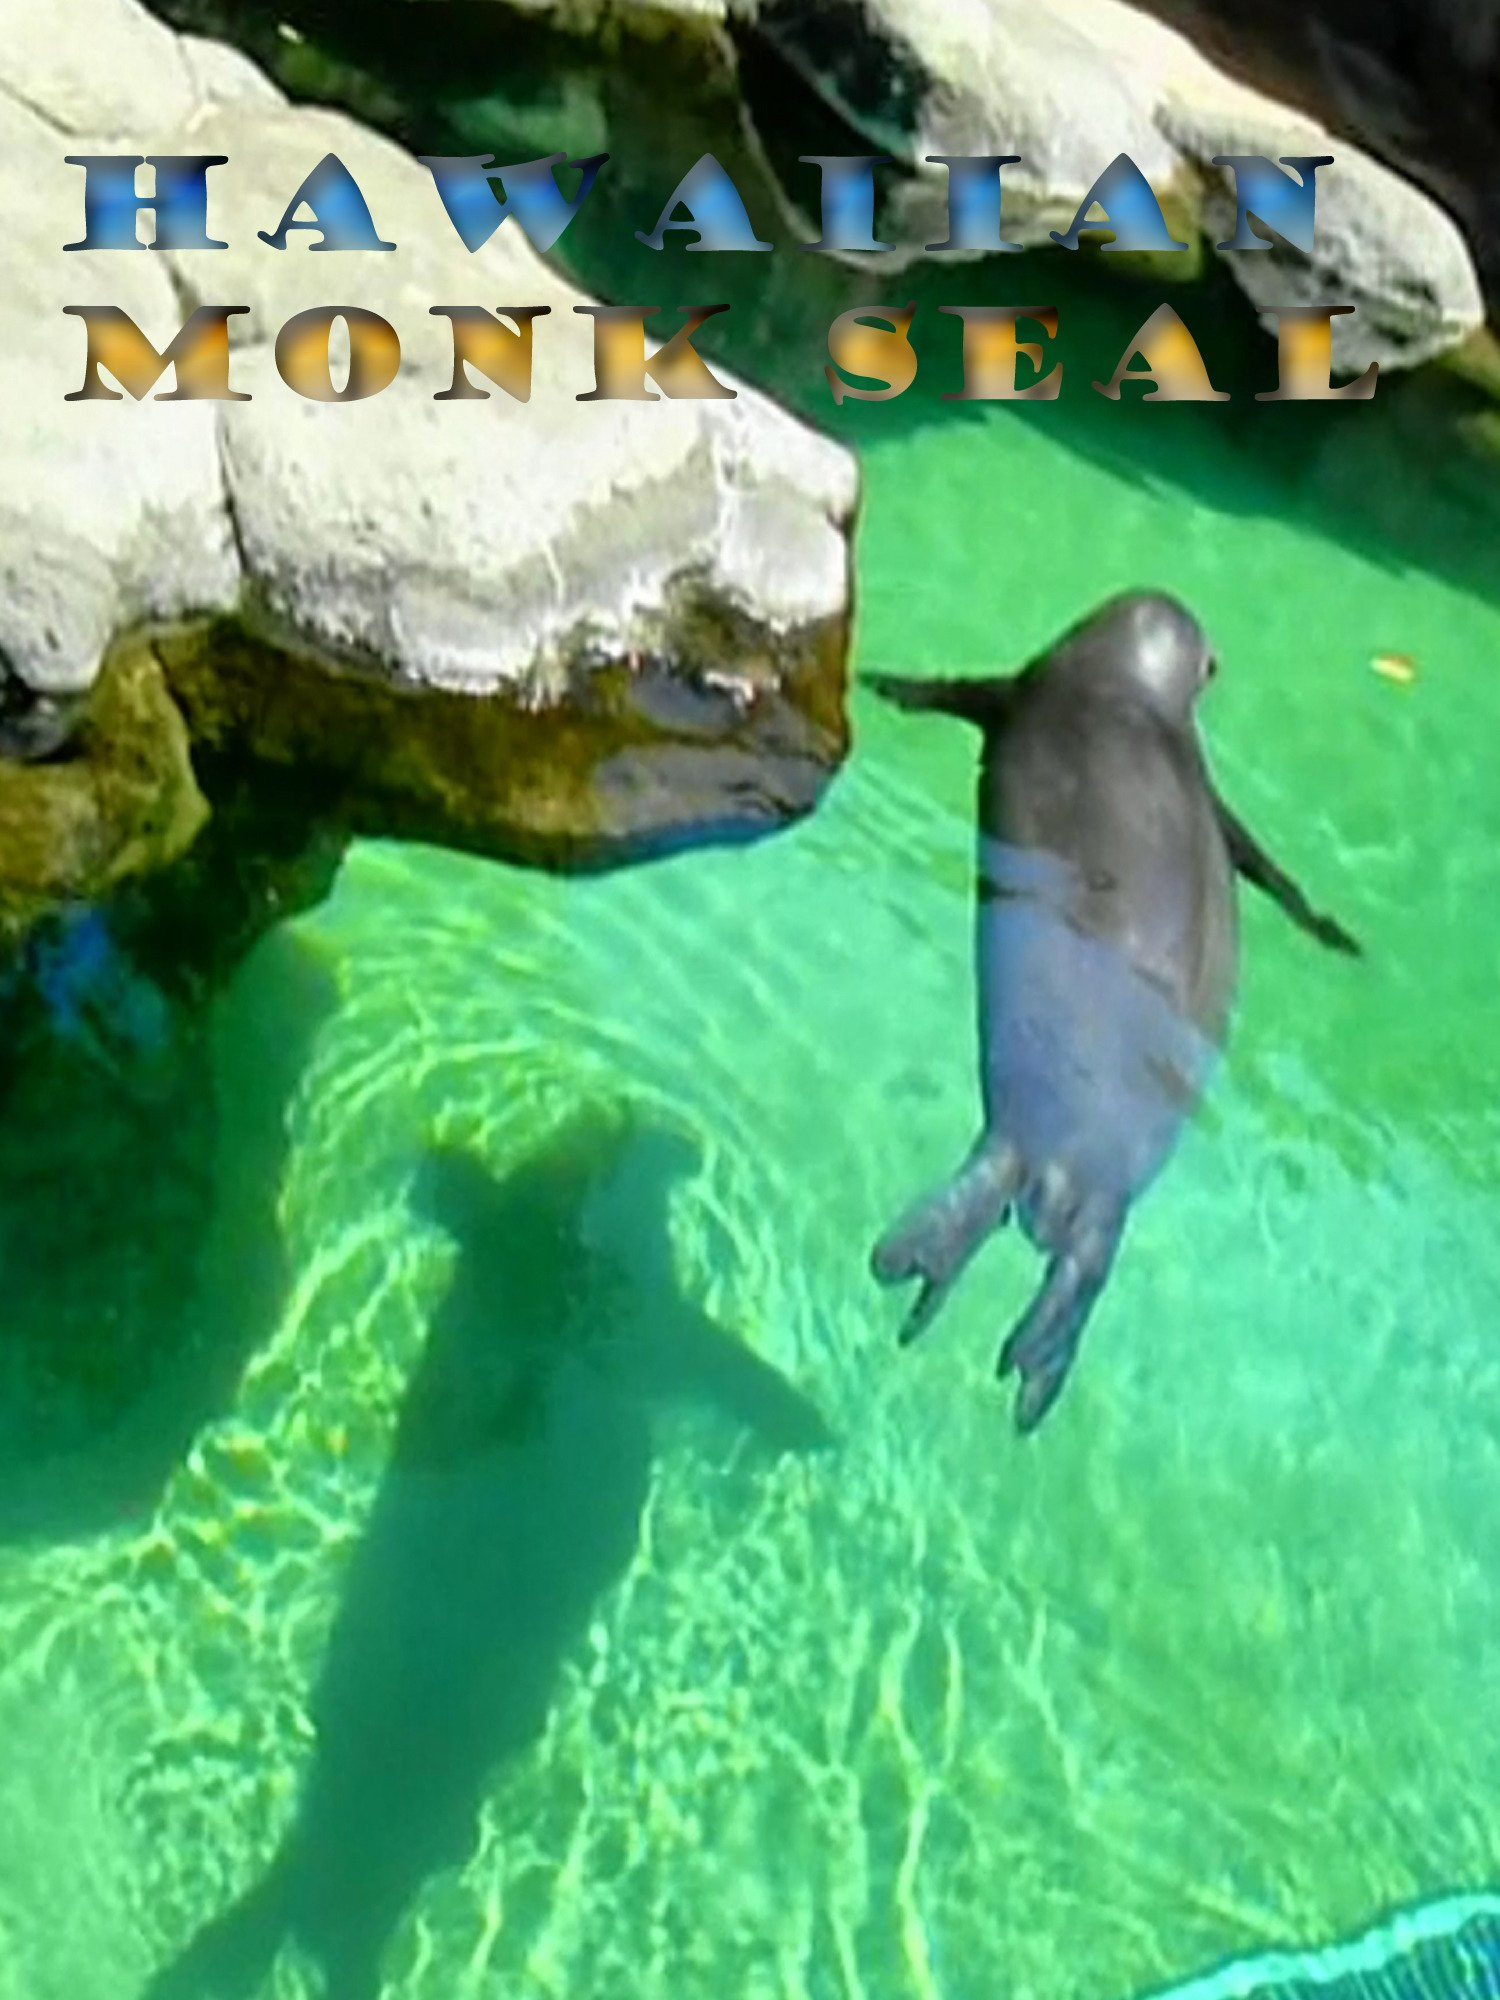 Clip: Hawaiian Monk Seal